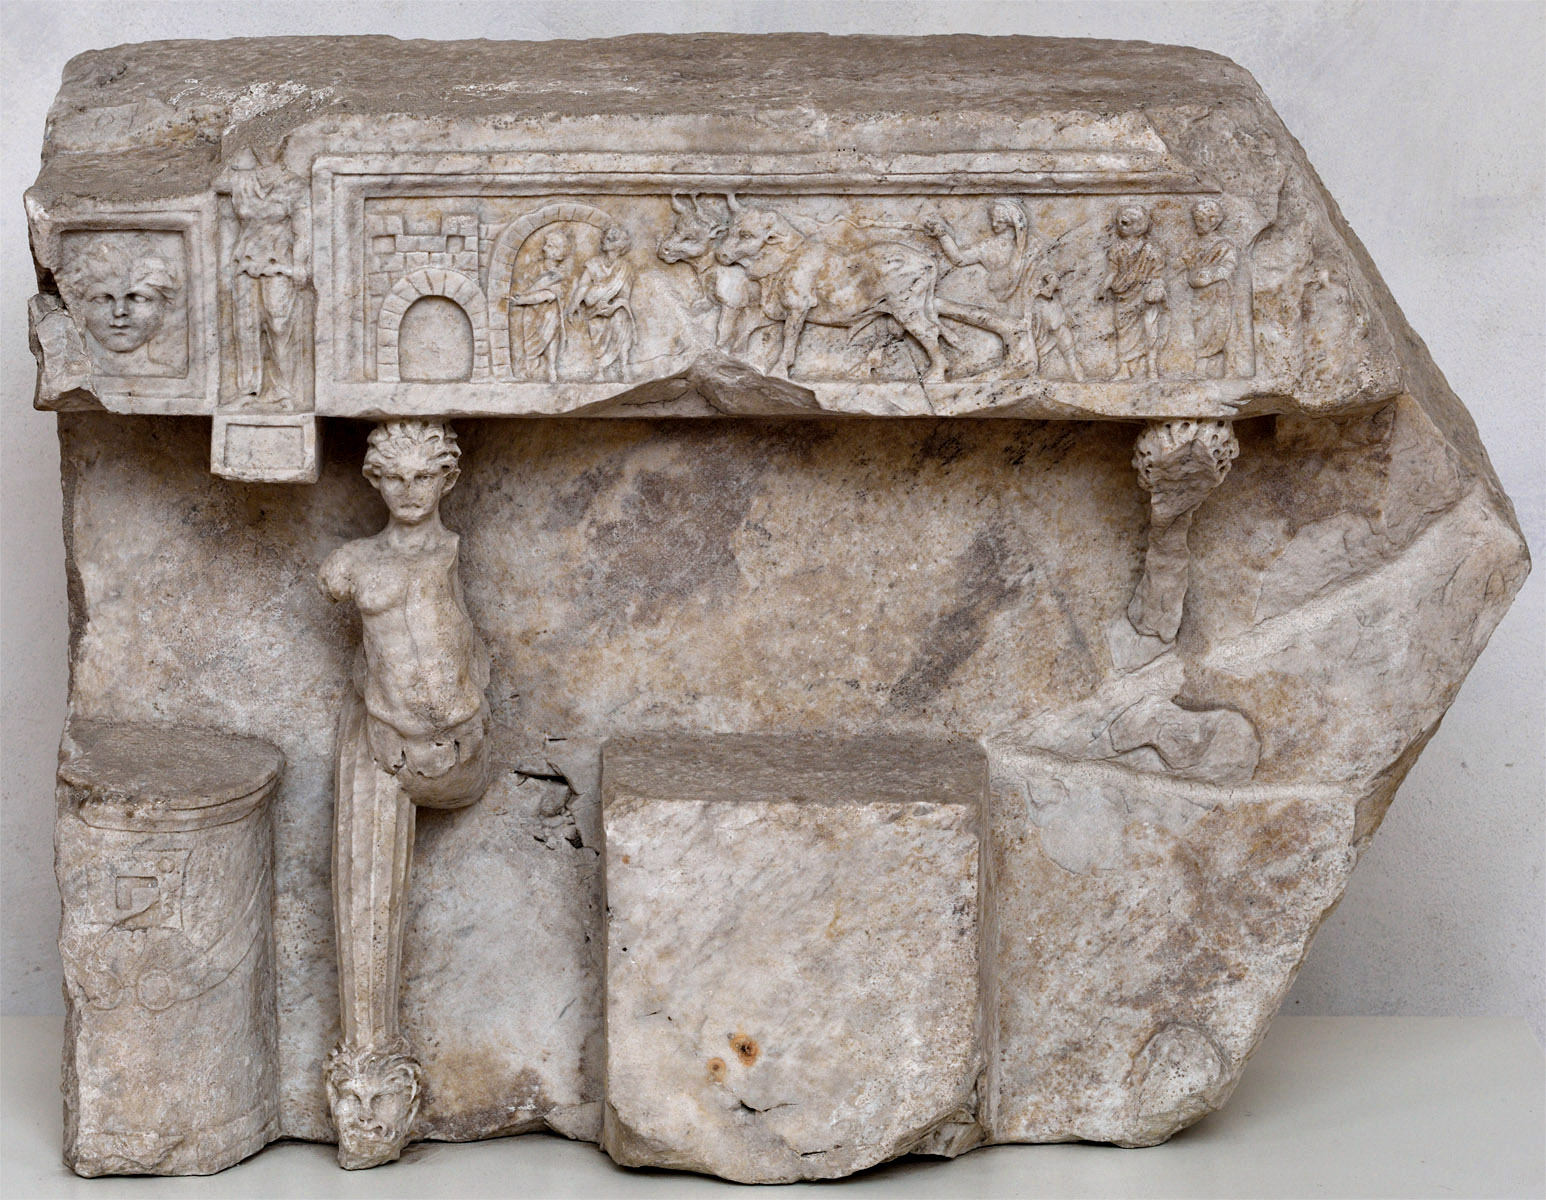 Marble block with a relief portrayal of a folding curule seat (sella curulis). Marble. Antonine period. Inv. No. 394442. Rome, Roman National Museum, Baths of Diocletian, Small courtyard of Certosa